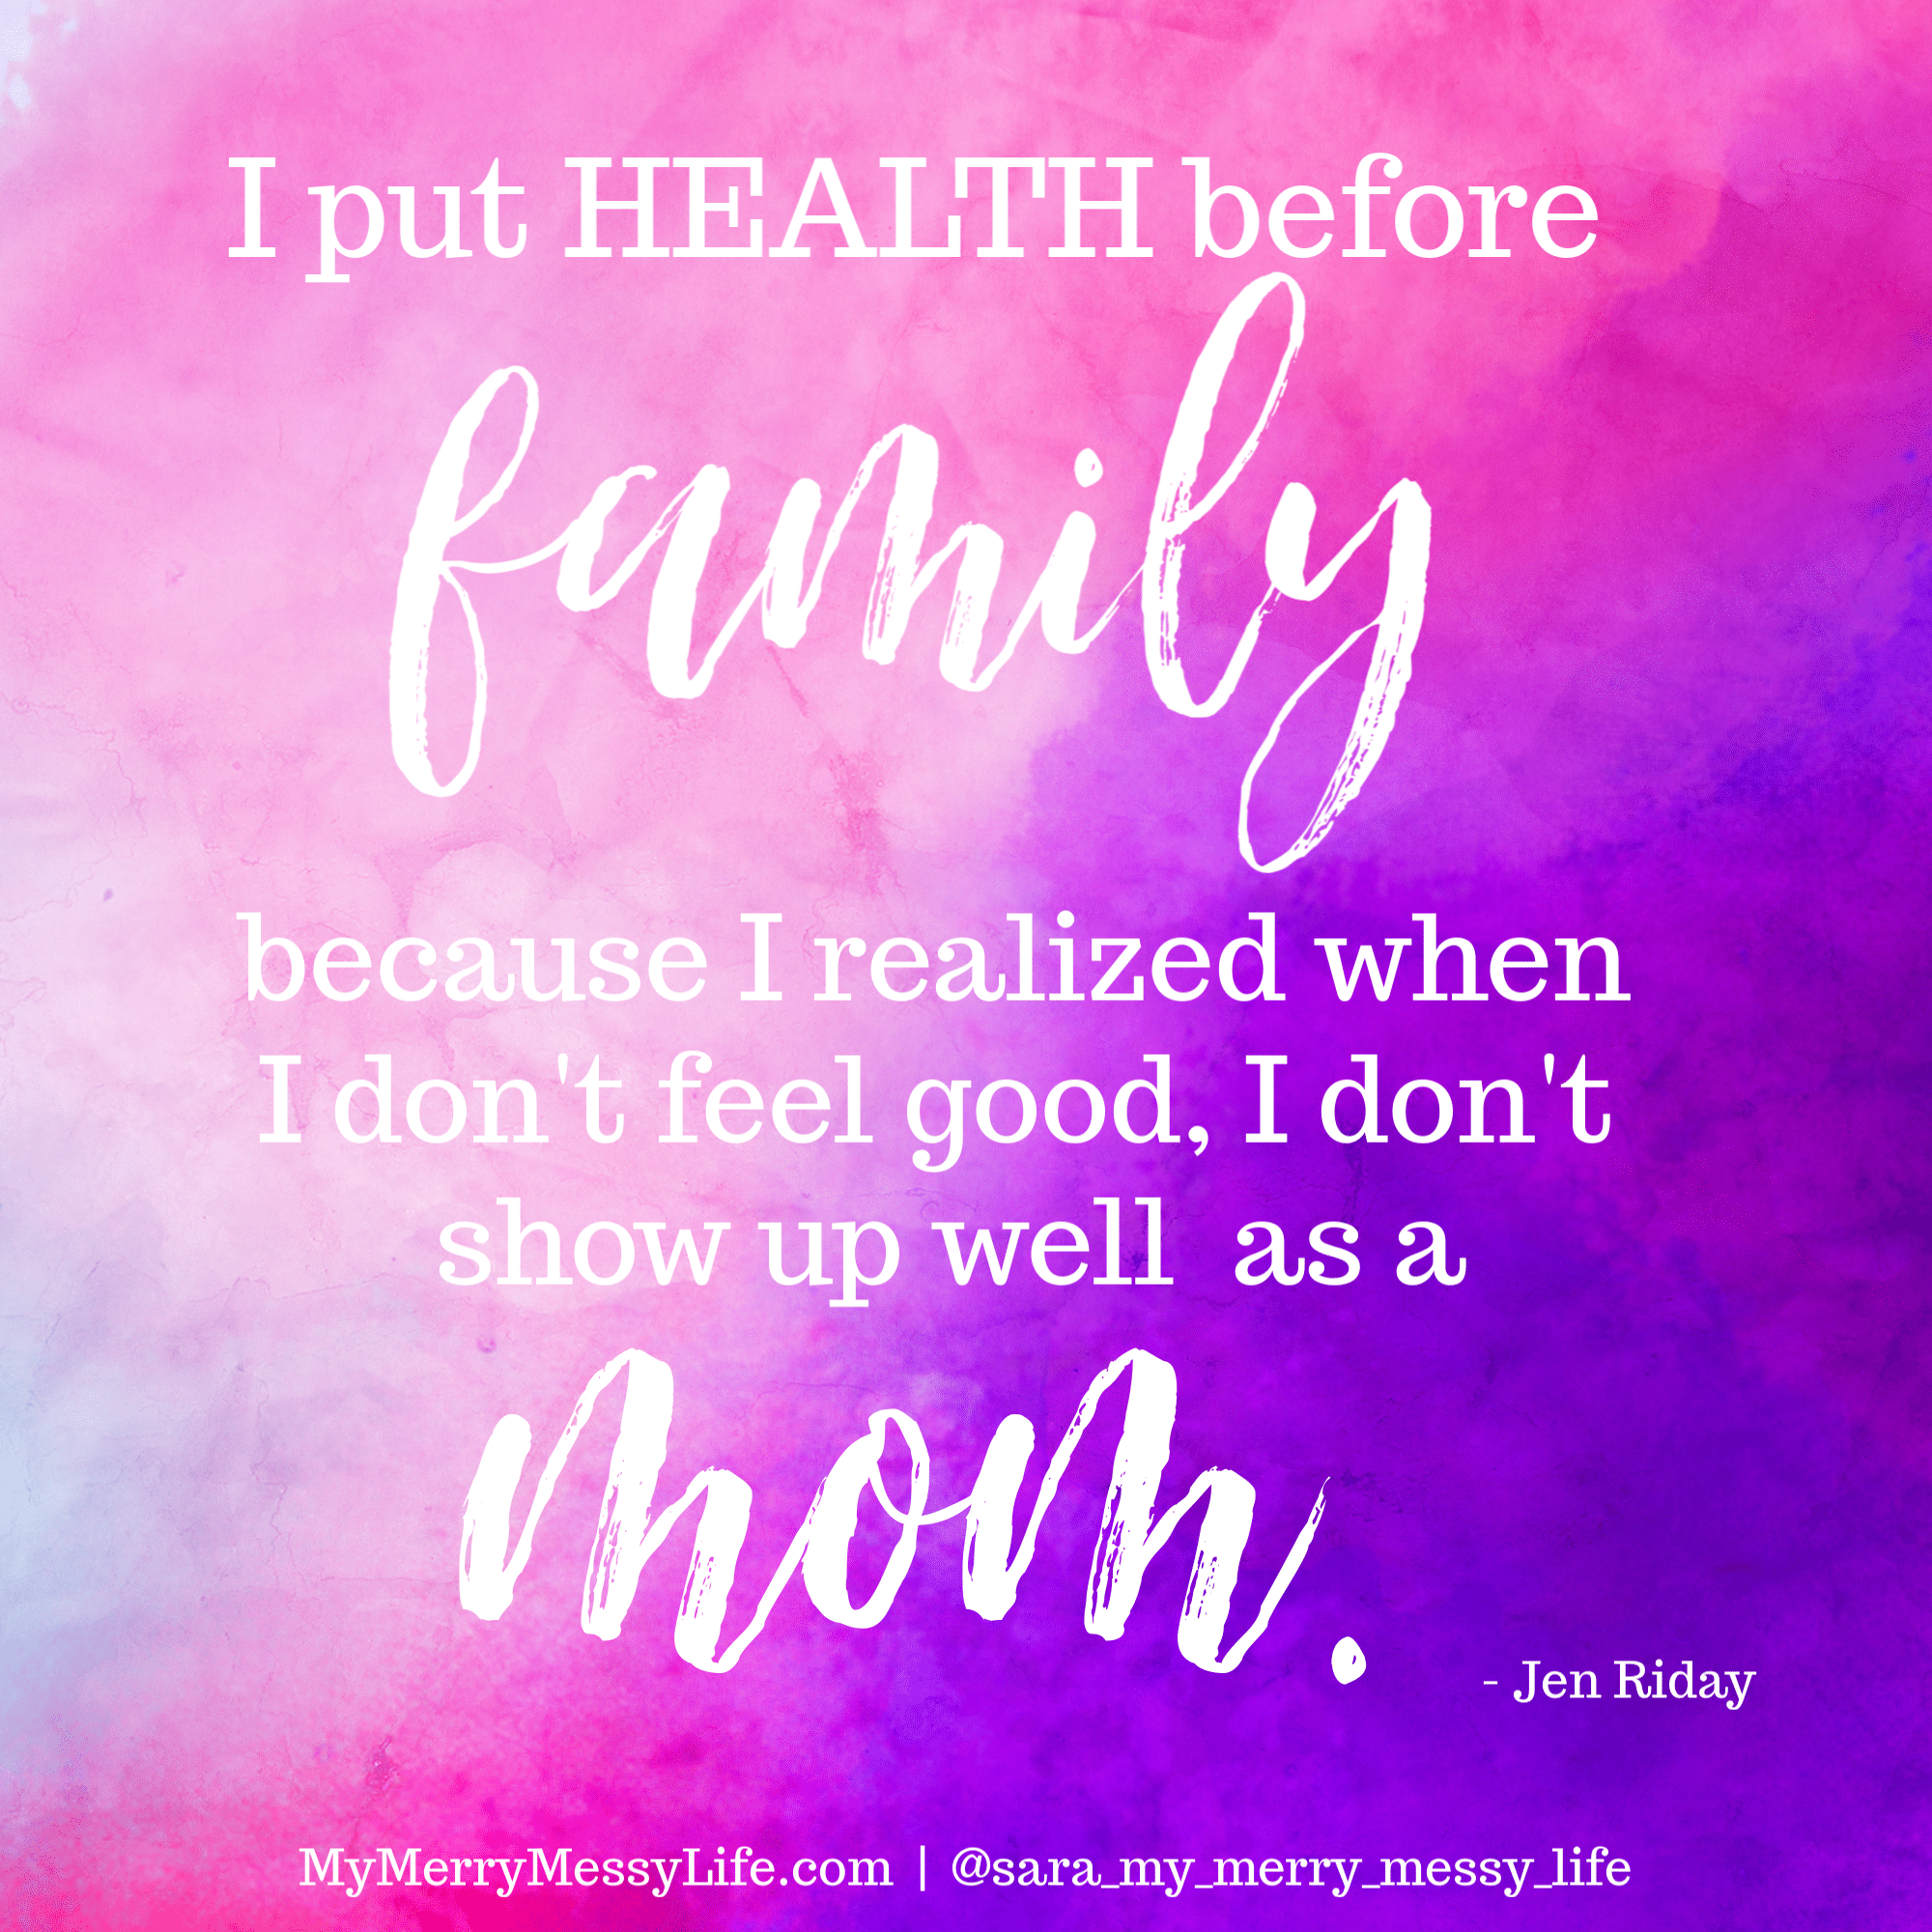 I put health before family because I realized that when I don't feel good, I don't show up well as a mom. - Jen Riday on The Merry Messy Moms Show